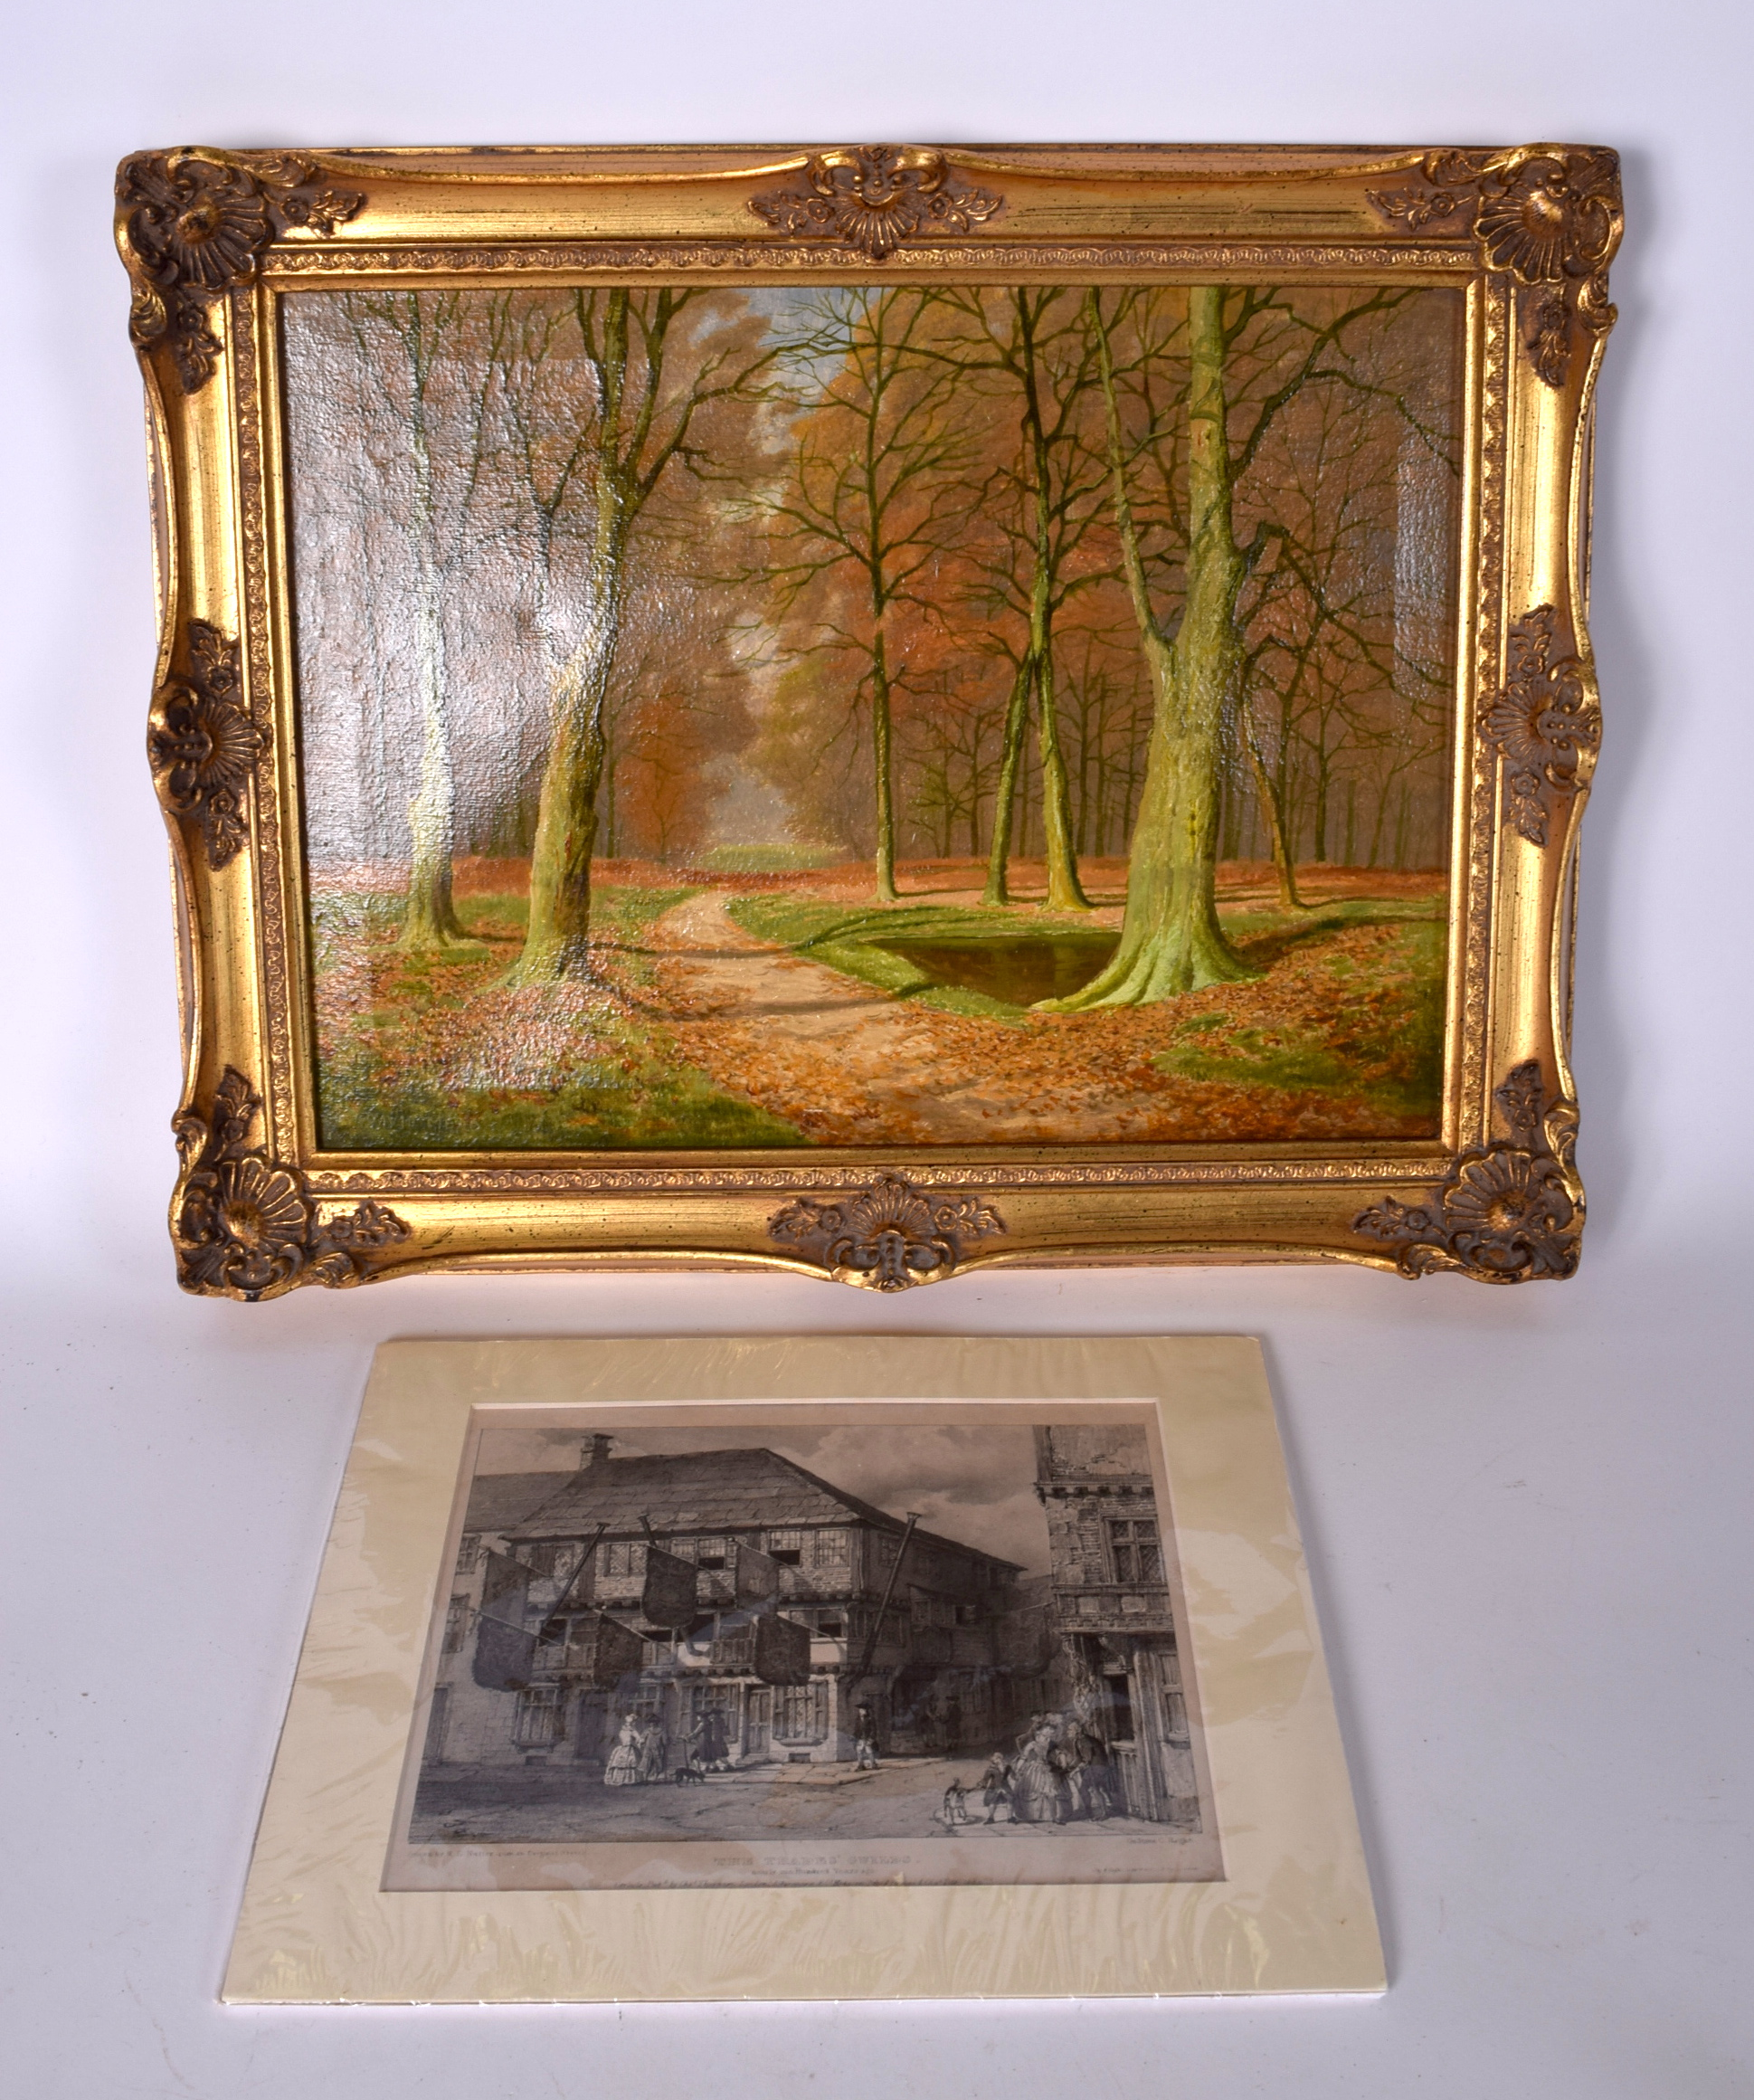 Lot 2322 - DAVID STRAIGHTWOOD (British) FRAMED OIL ON CANVAS, trees in an autumn landscape, together with a pr